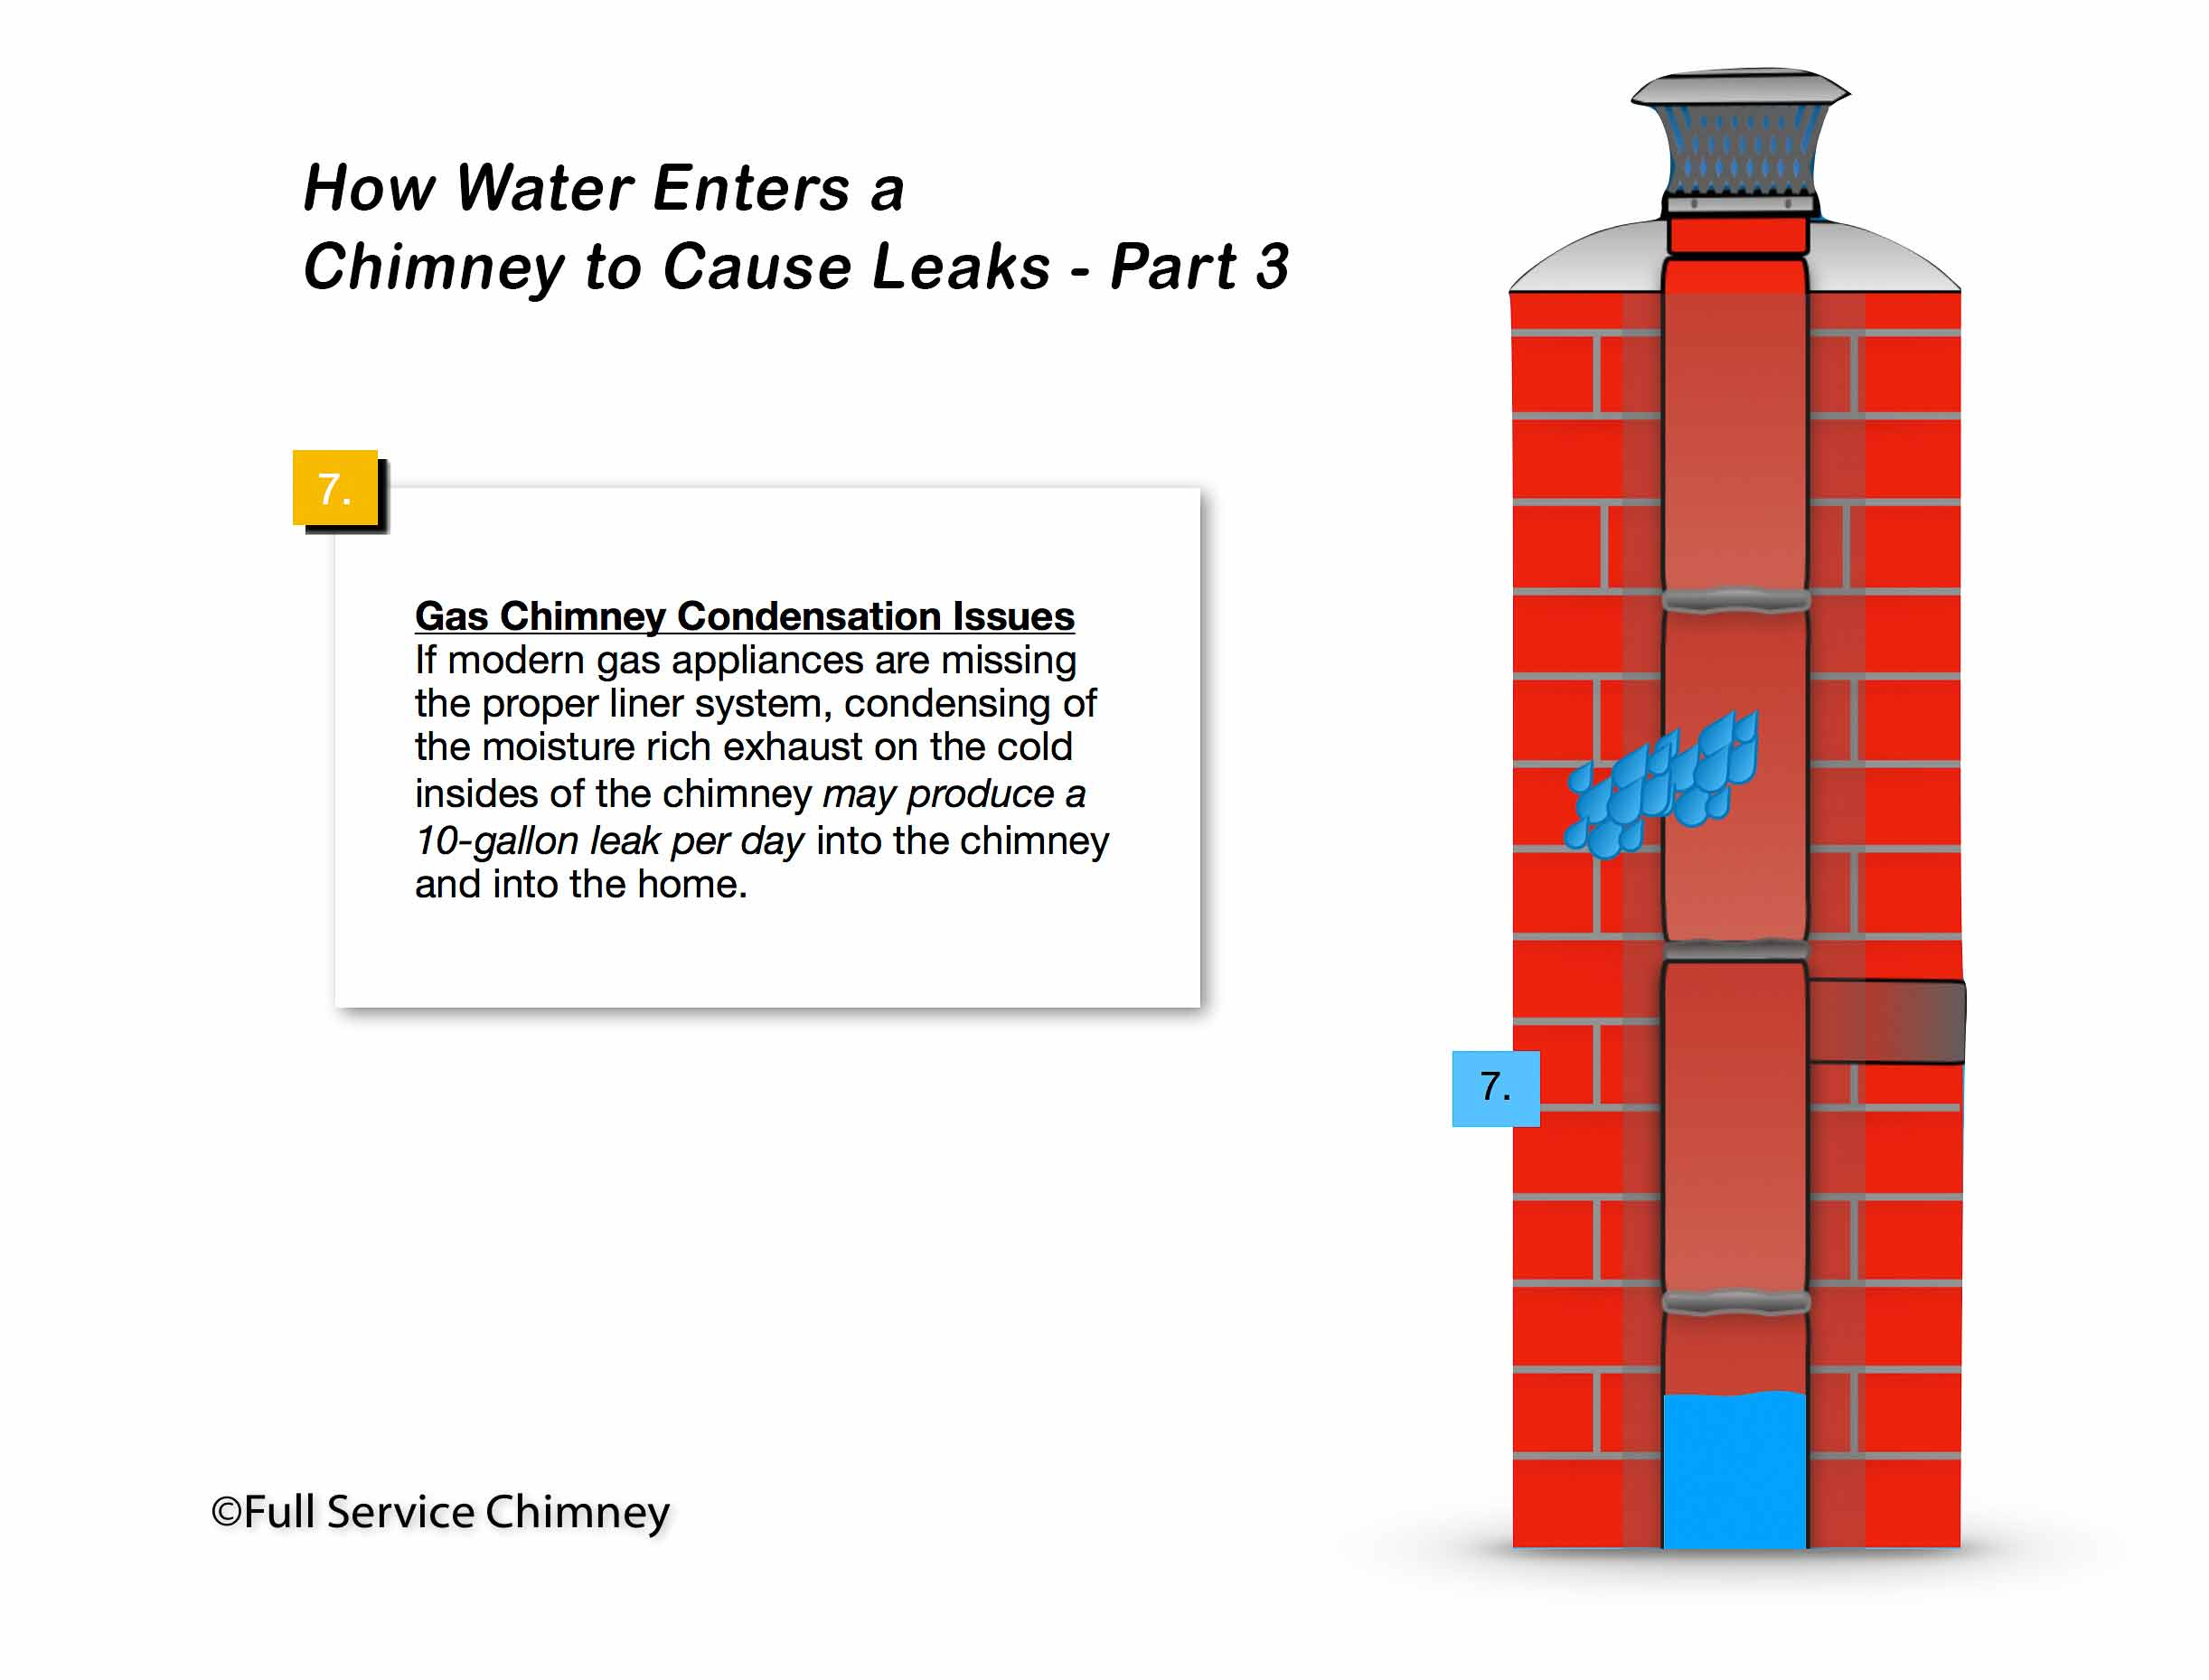 How Water Enters a Chimney to Cause Leaks Diagram - Part 3 - Gas Chimney Condensation Issues Cause Leaks